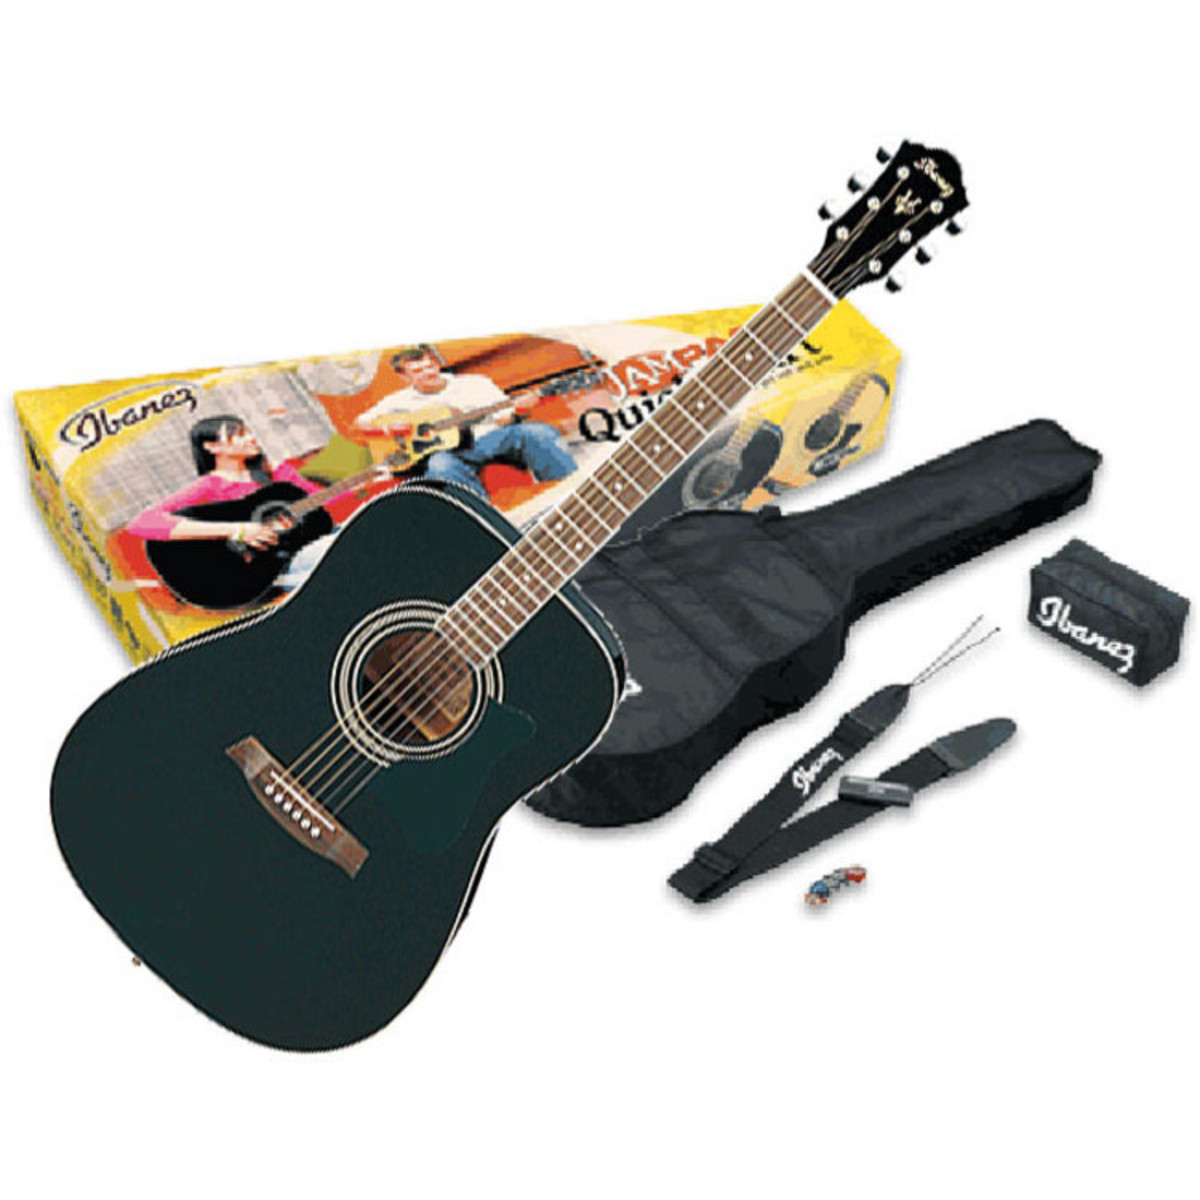 Discontinued Ibanez V50 Acoustic Guitar Jampack In Black At Gear4music